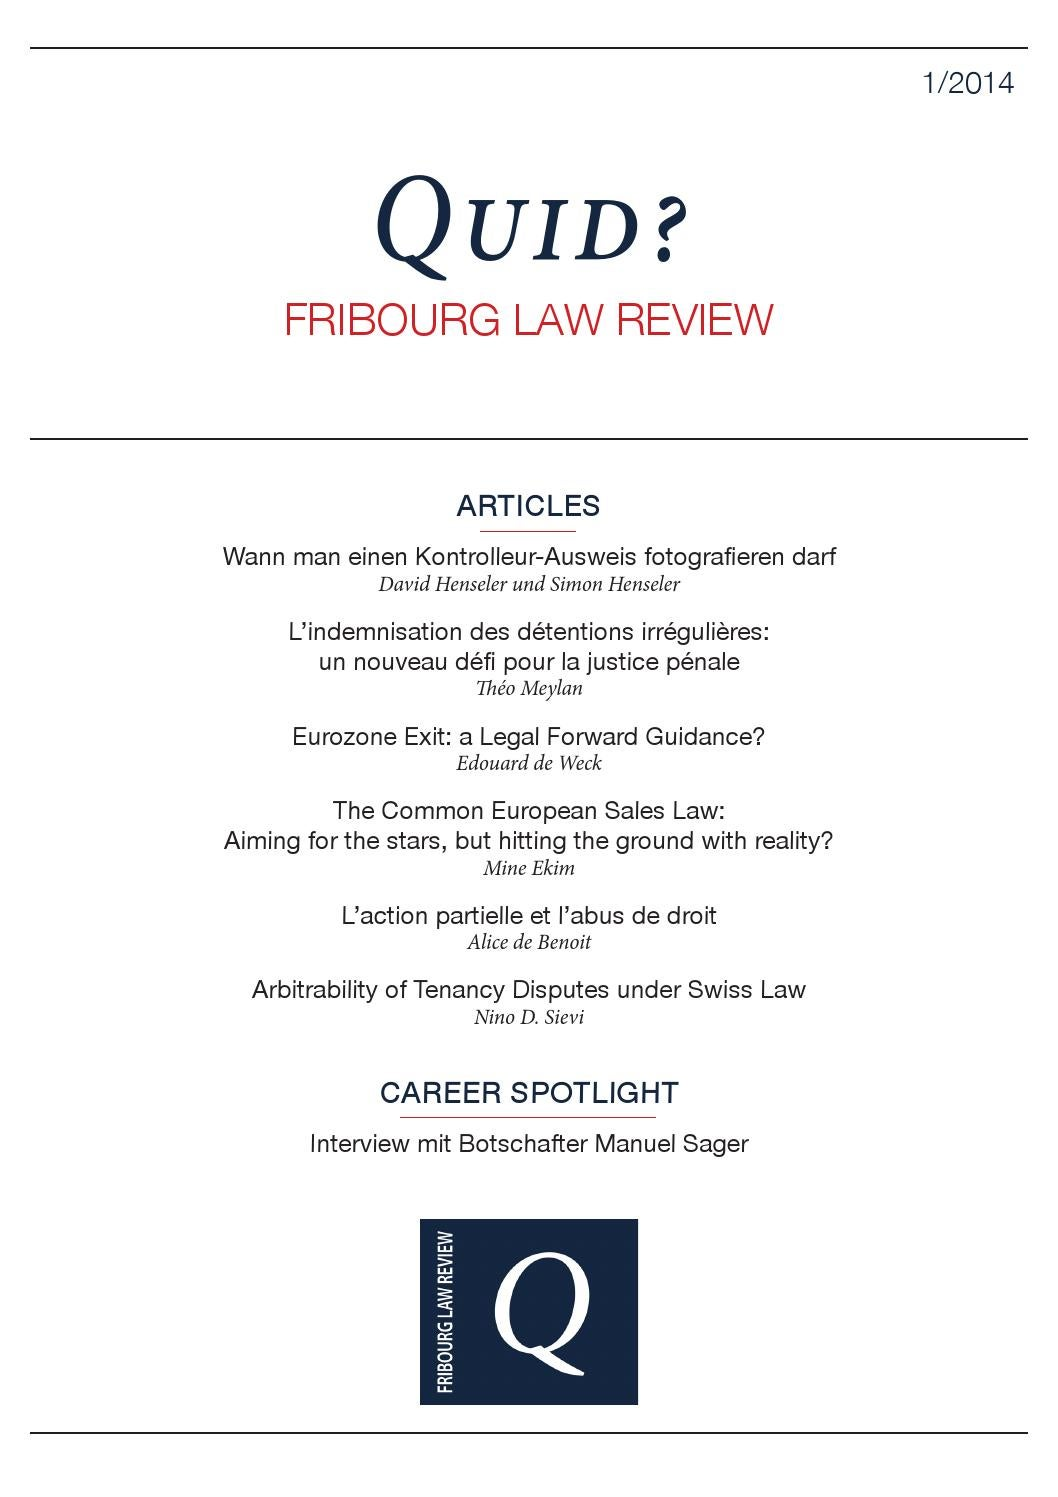 Quid? Fribourg Law Review 1/2014 by Quid? Fribourg Law Review - issuu